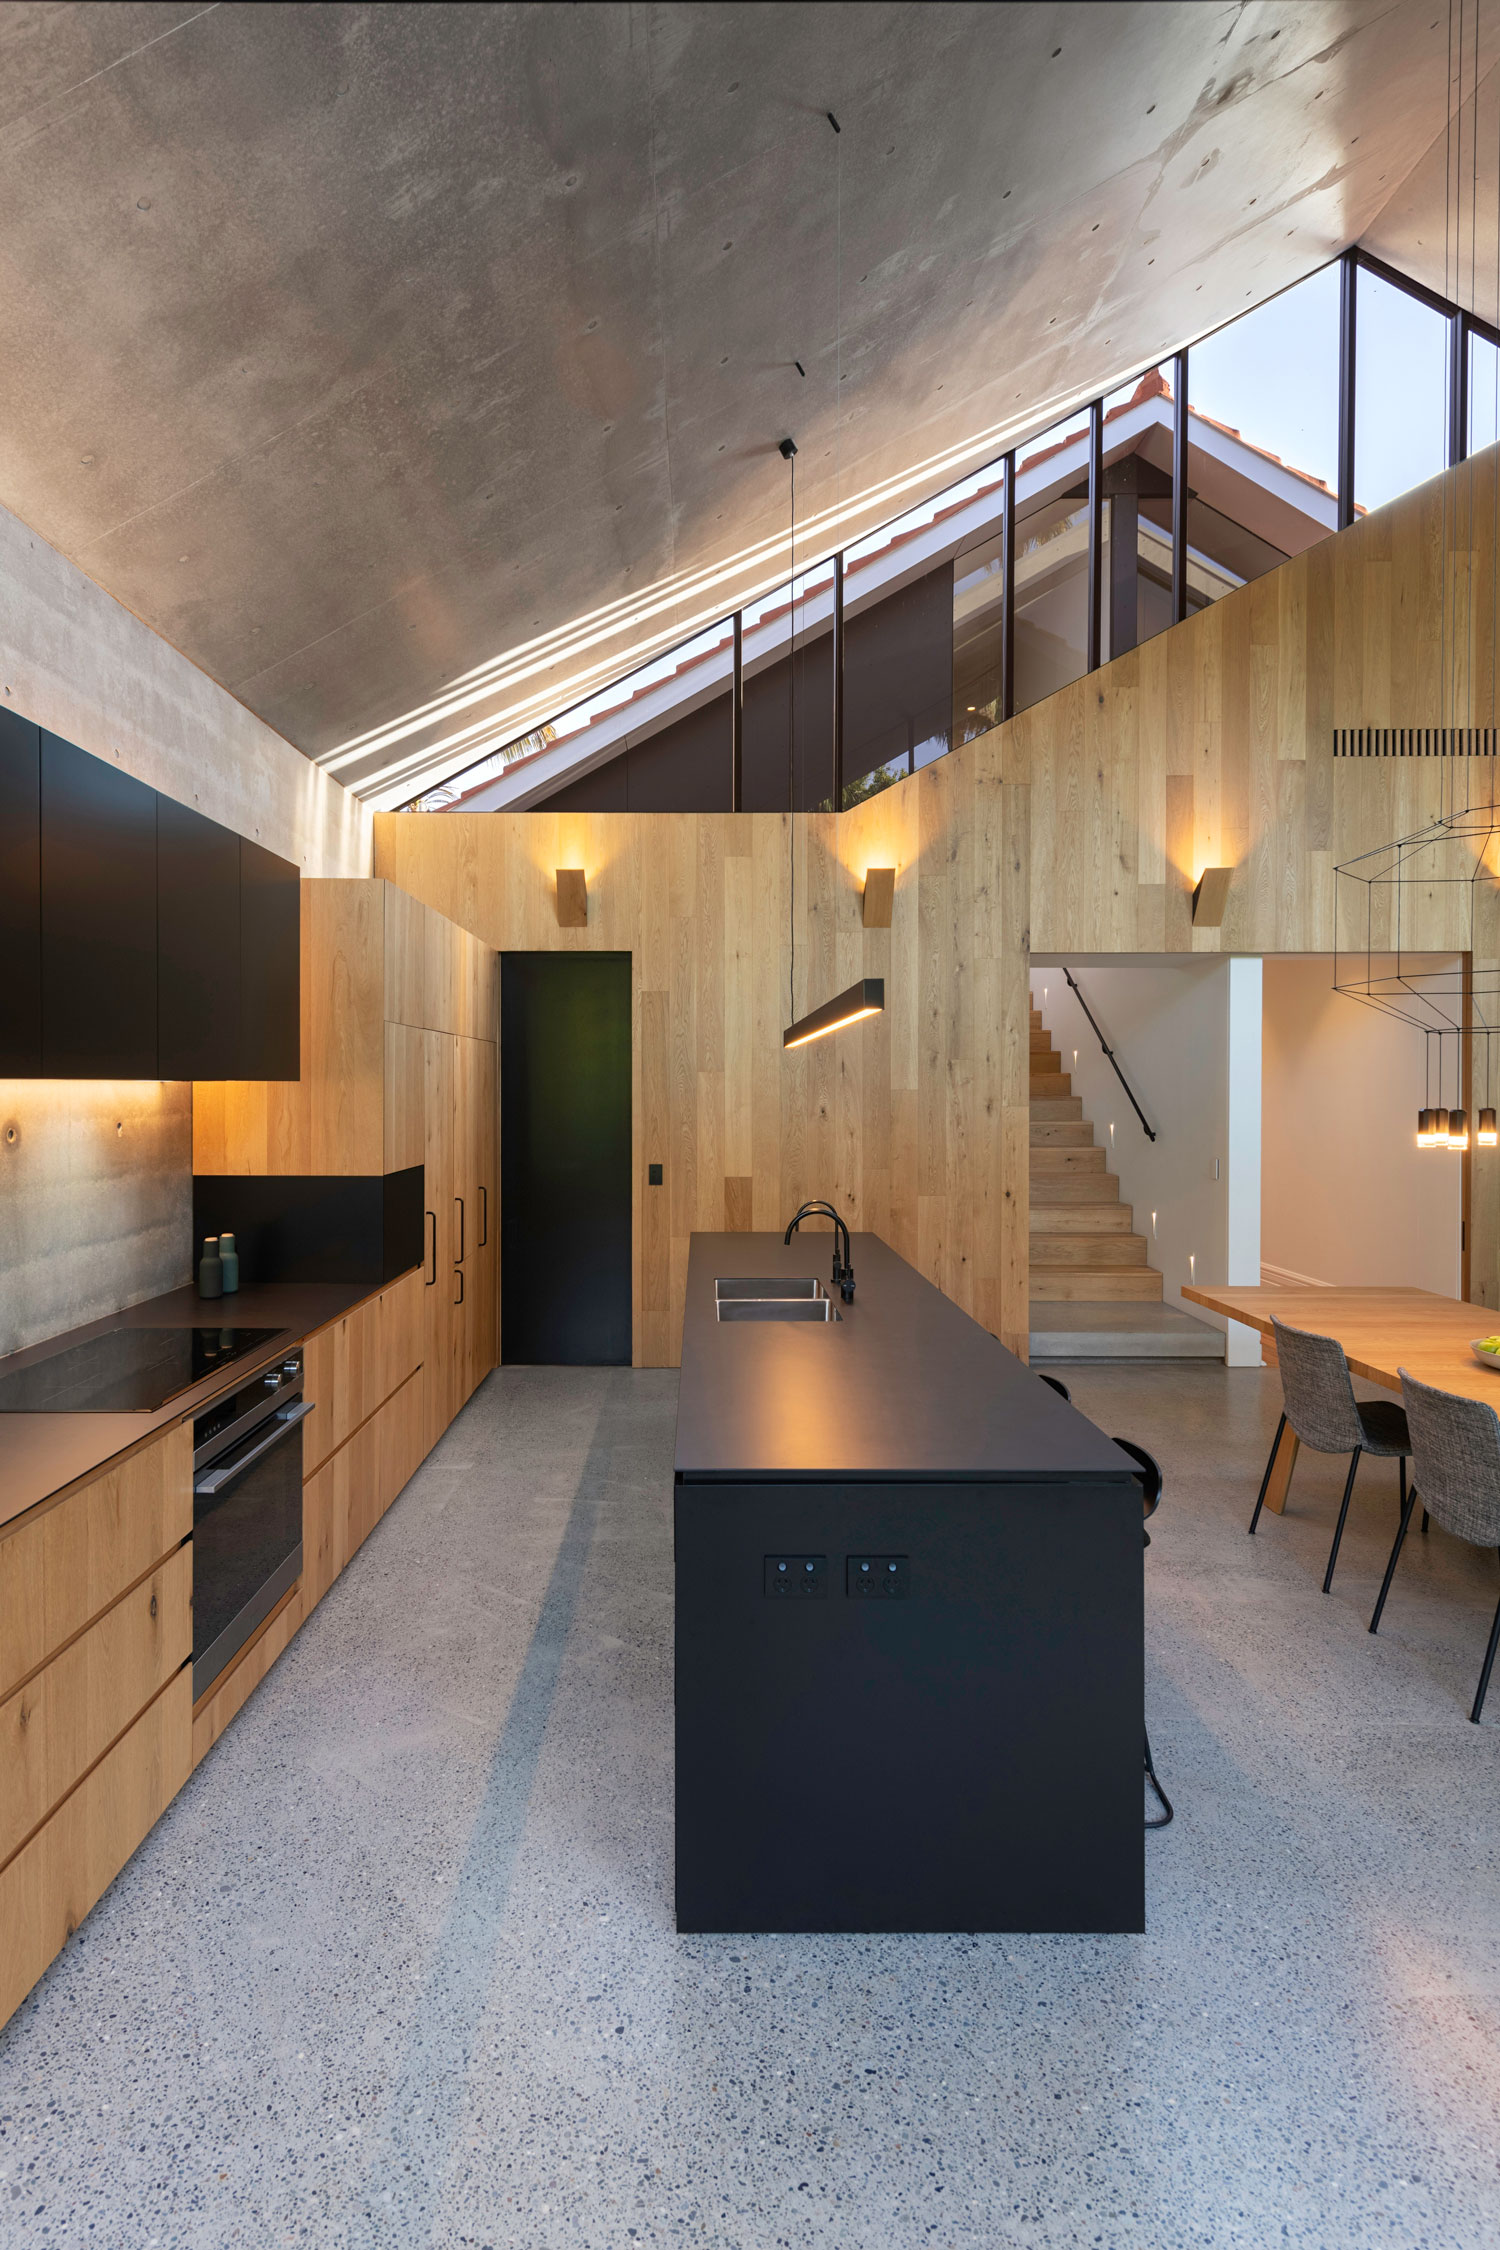 The Planning Internally Was Adjusted To Make Sense Of Its Owners, Through Simplification Also